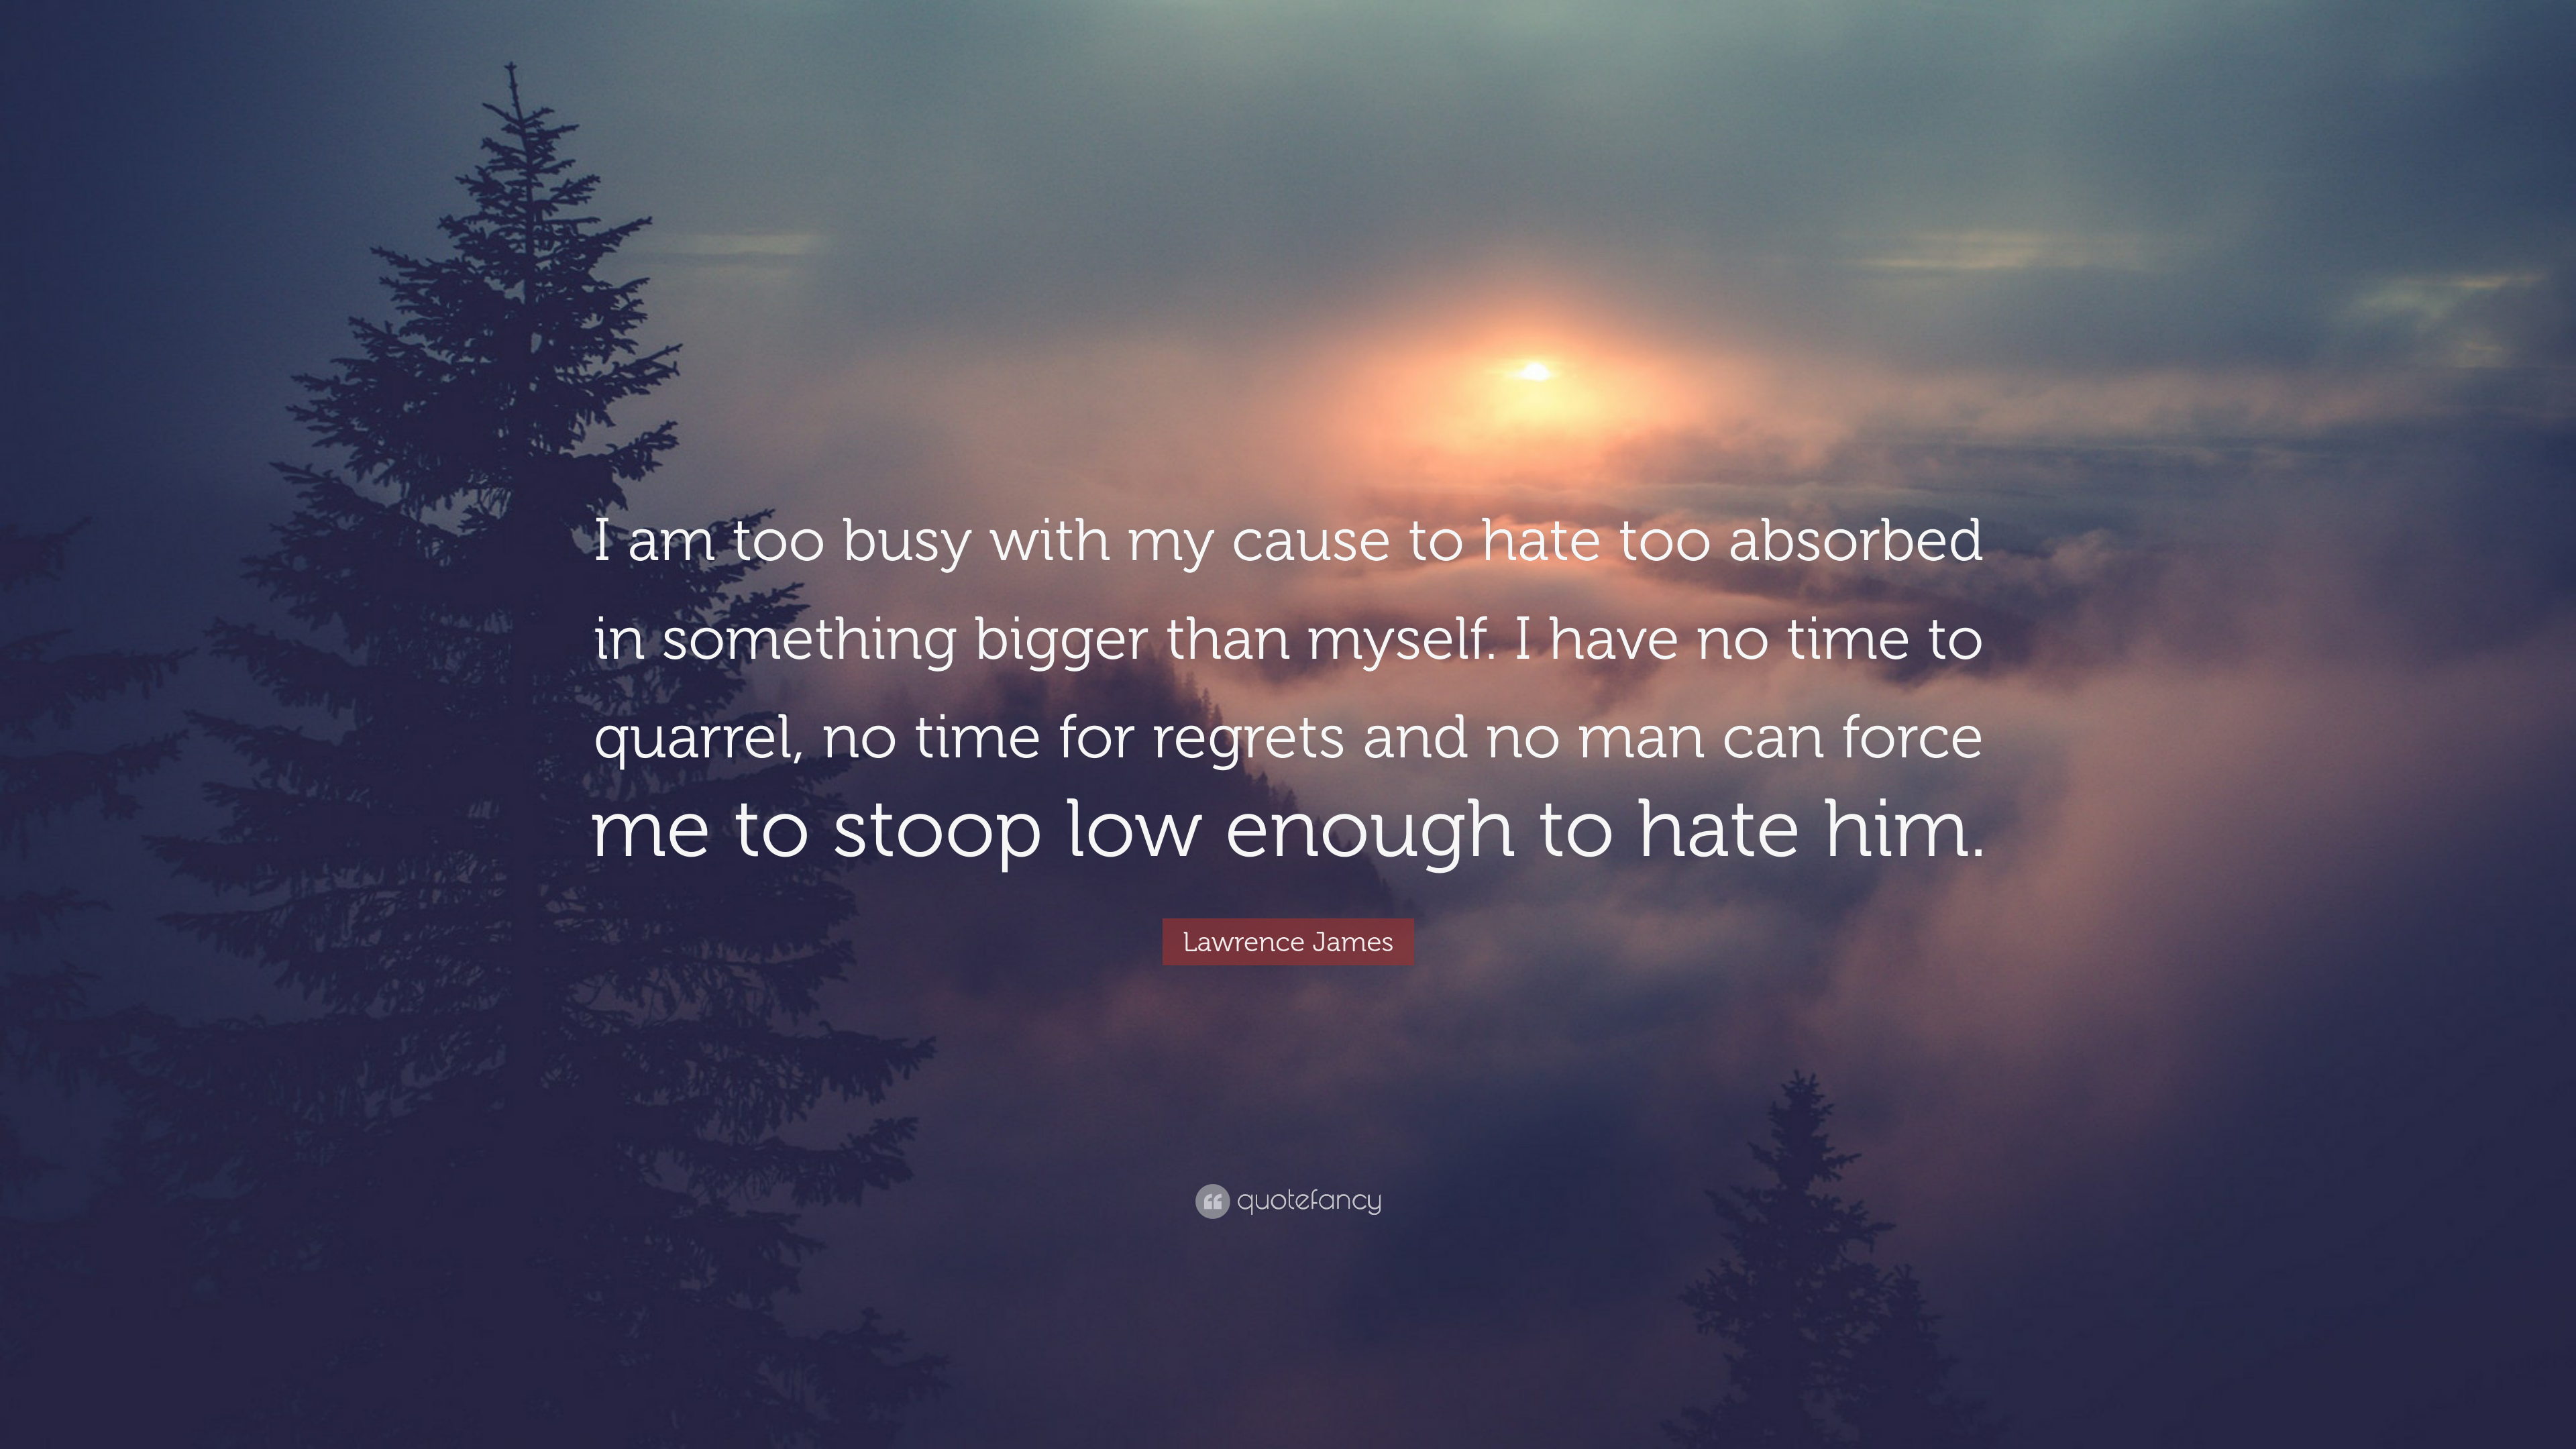 Lawrence James Quote I Am Too Busy With My Cause To Hate Too Absorbed In Something Bigger Than Myself I Have No Time To Quarrel No Time For 7 Wallpapers Quotefancy